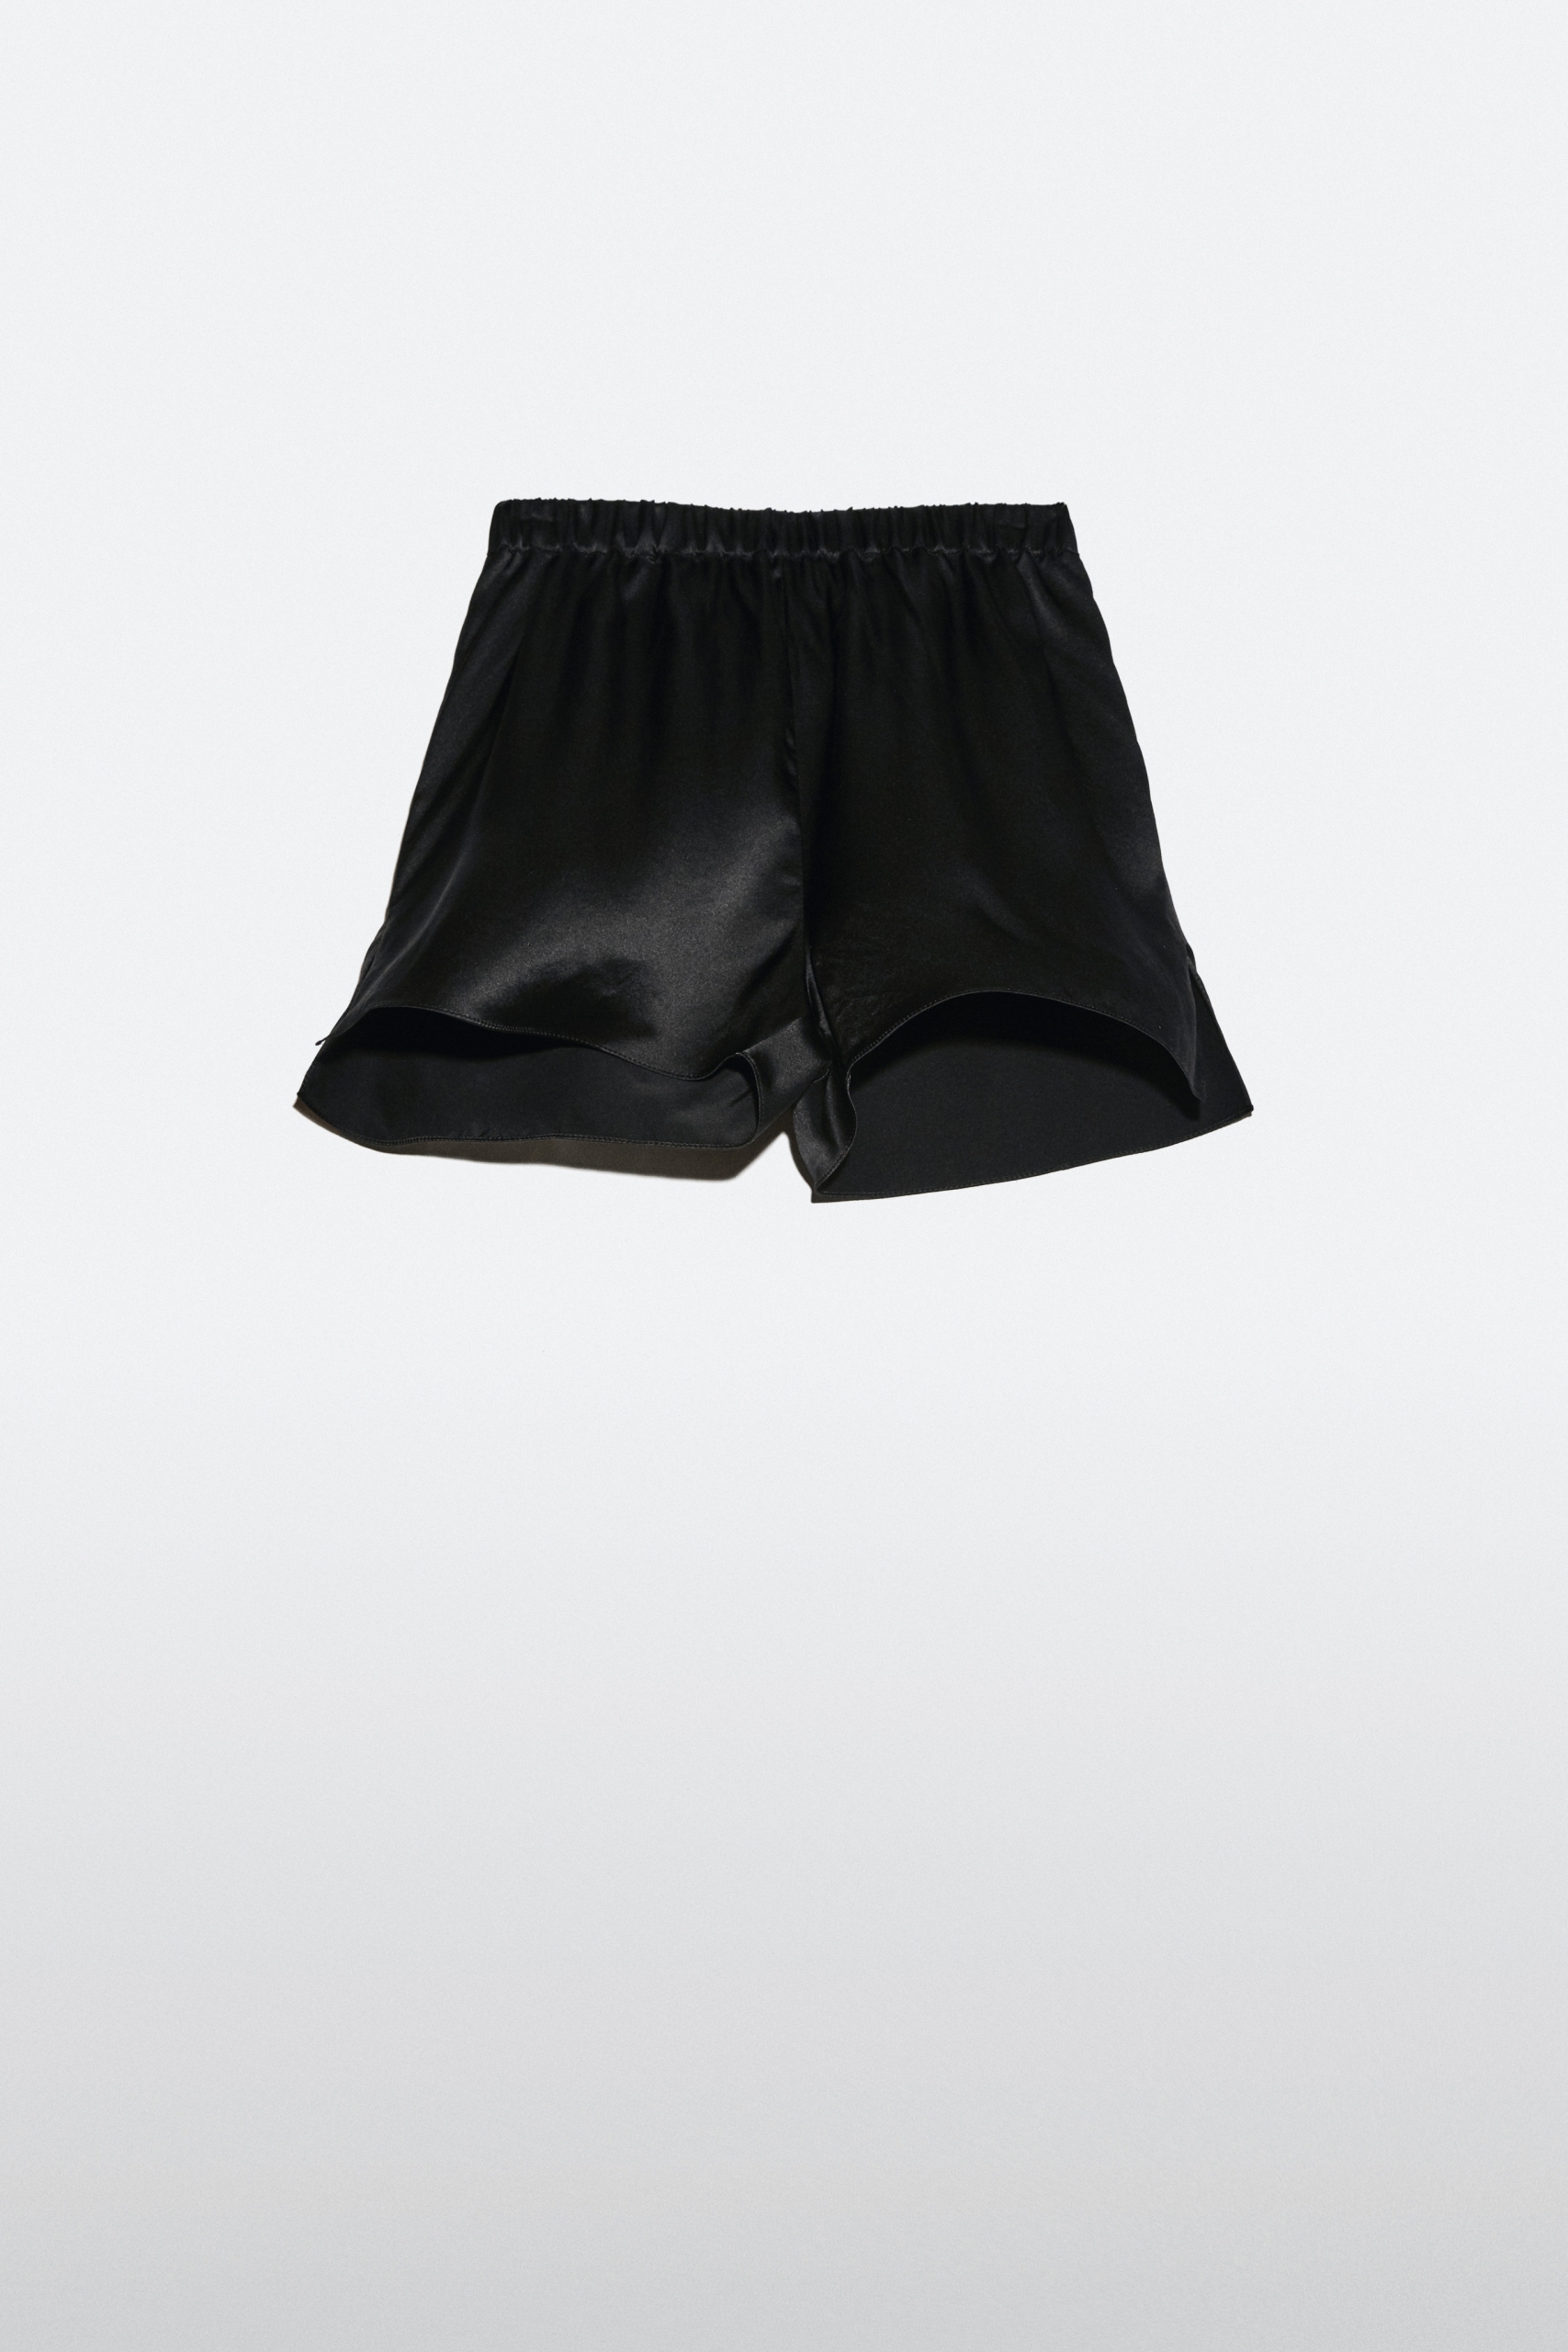 ©OBANDO | OUD NOIR CARNAL SHORTS scaled